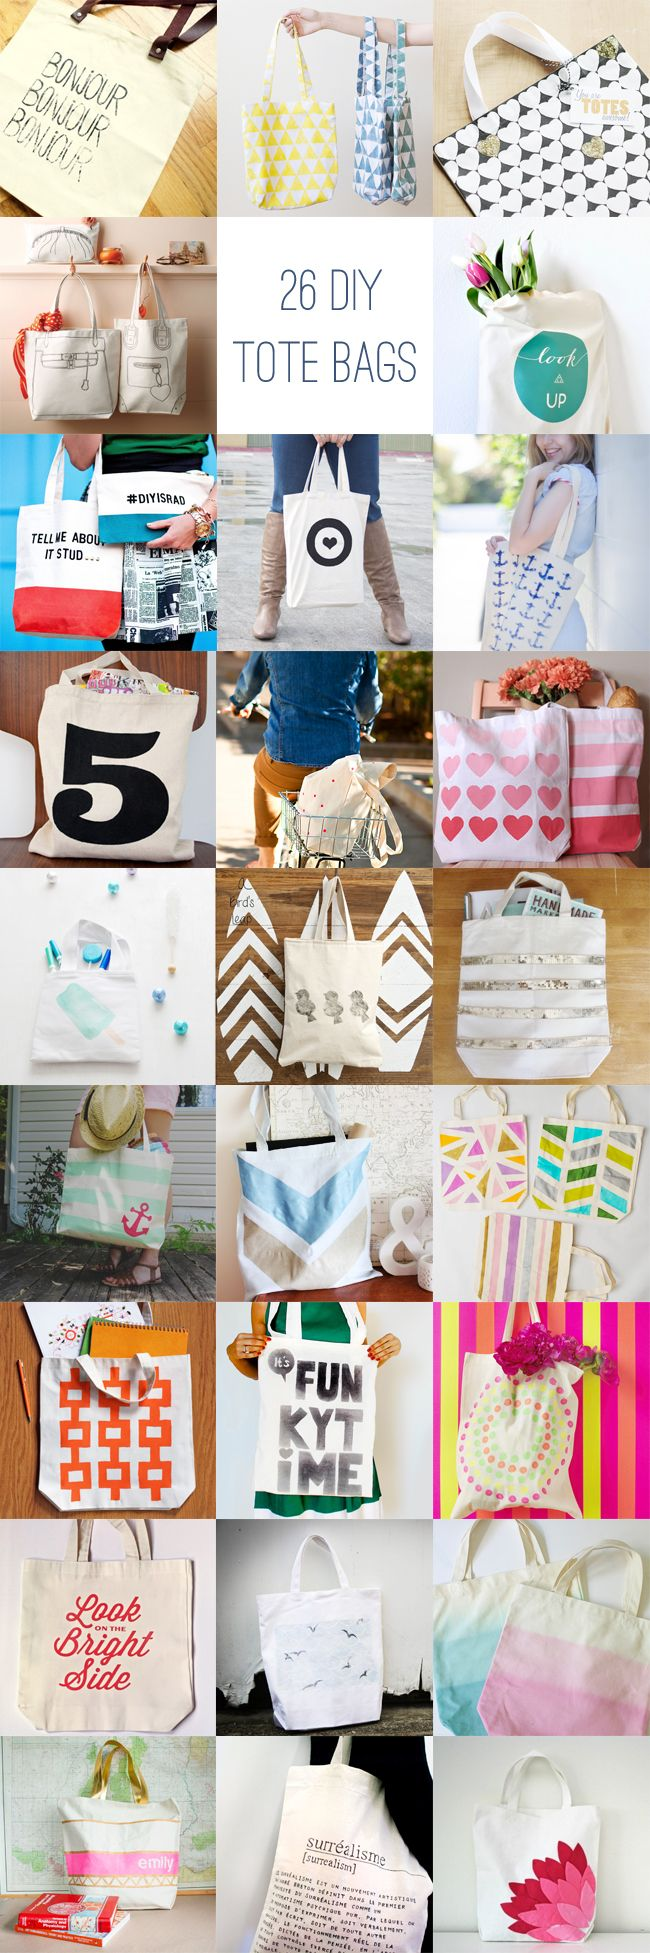 26 Ways to Decorate a Plain Tote Bag [Henry Happened]